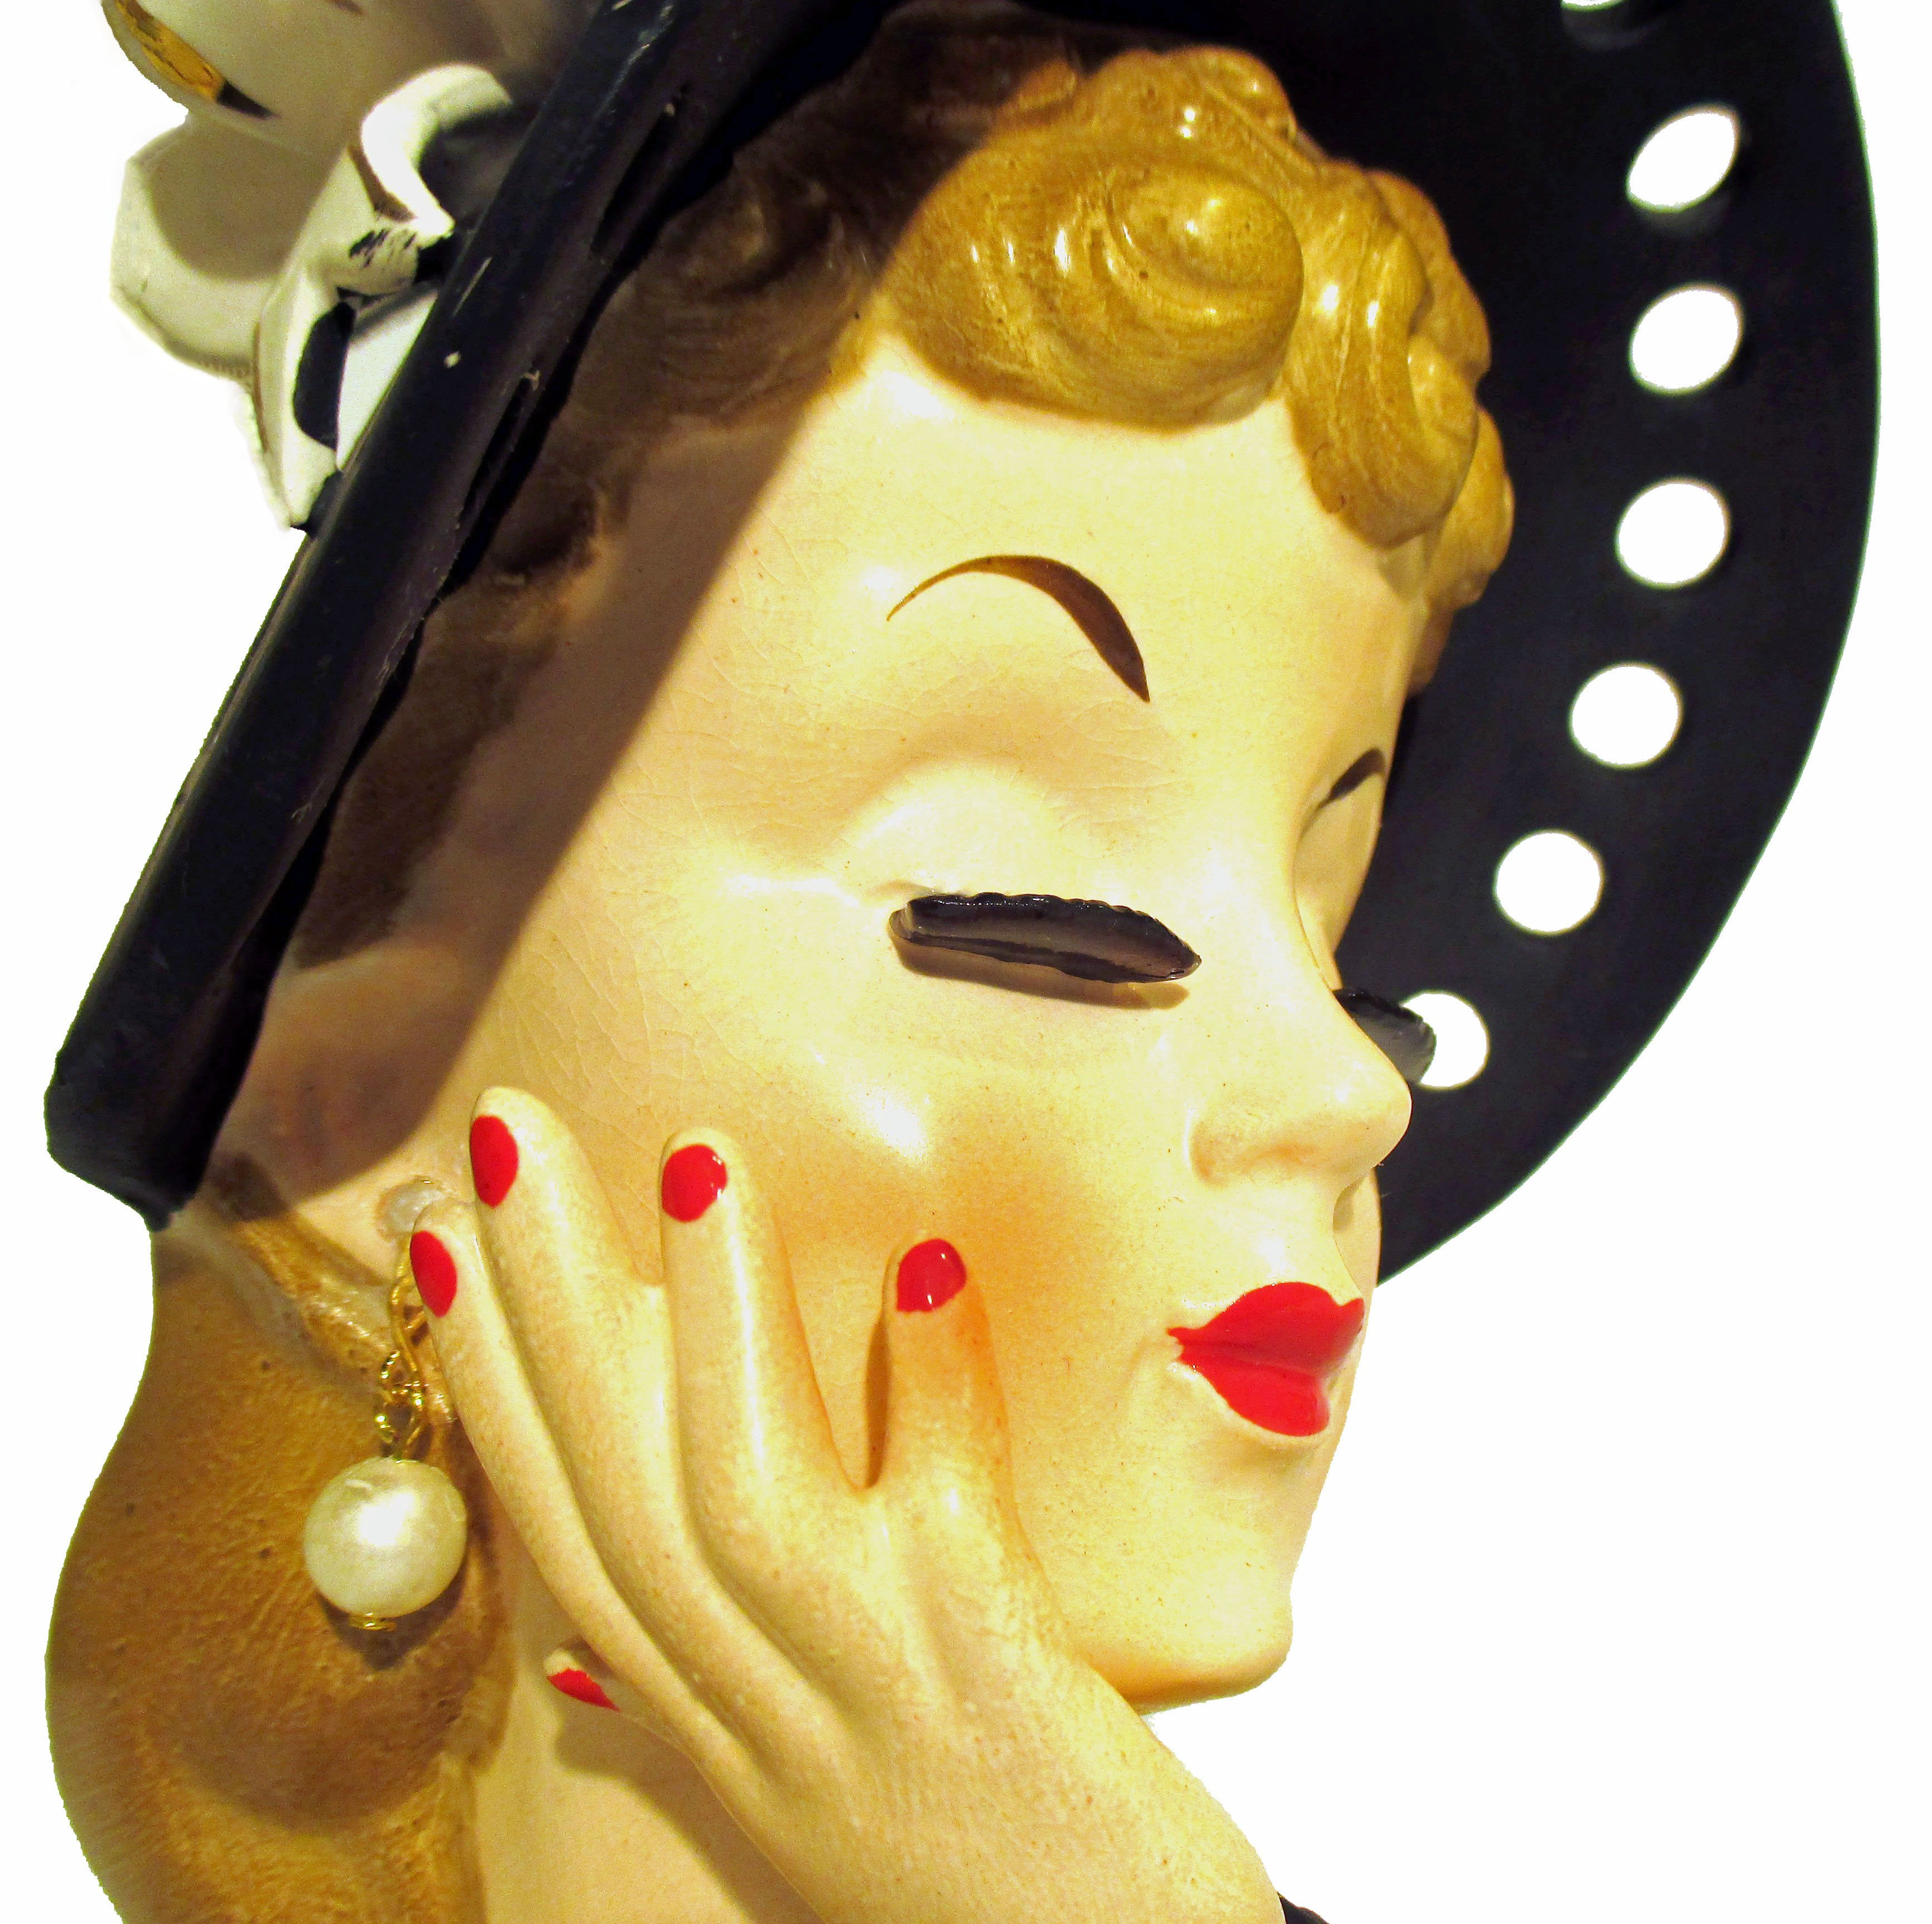 vintage girl head vase of vintage lady head vase hand painted white face red lips etsy throughout theheadvaseshop